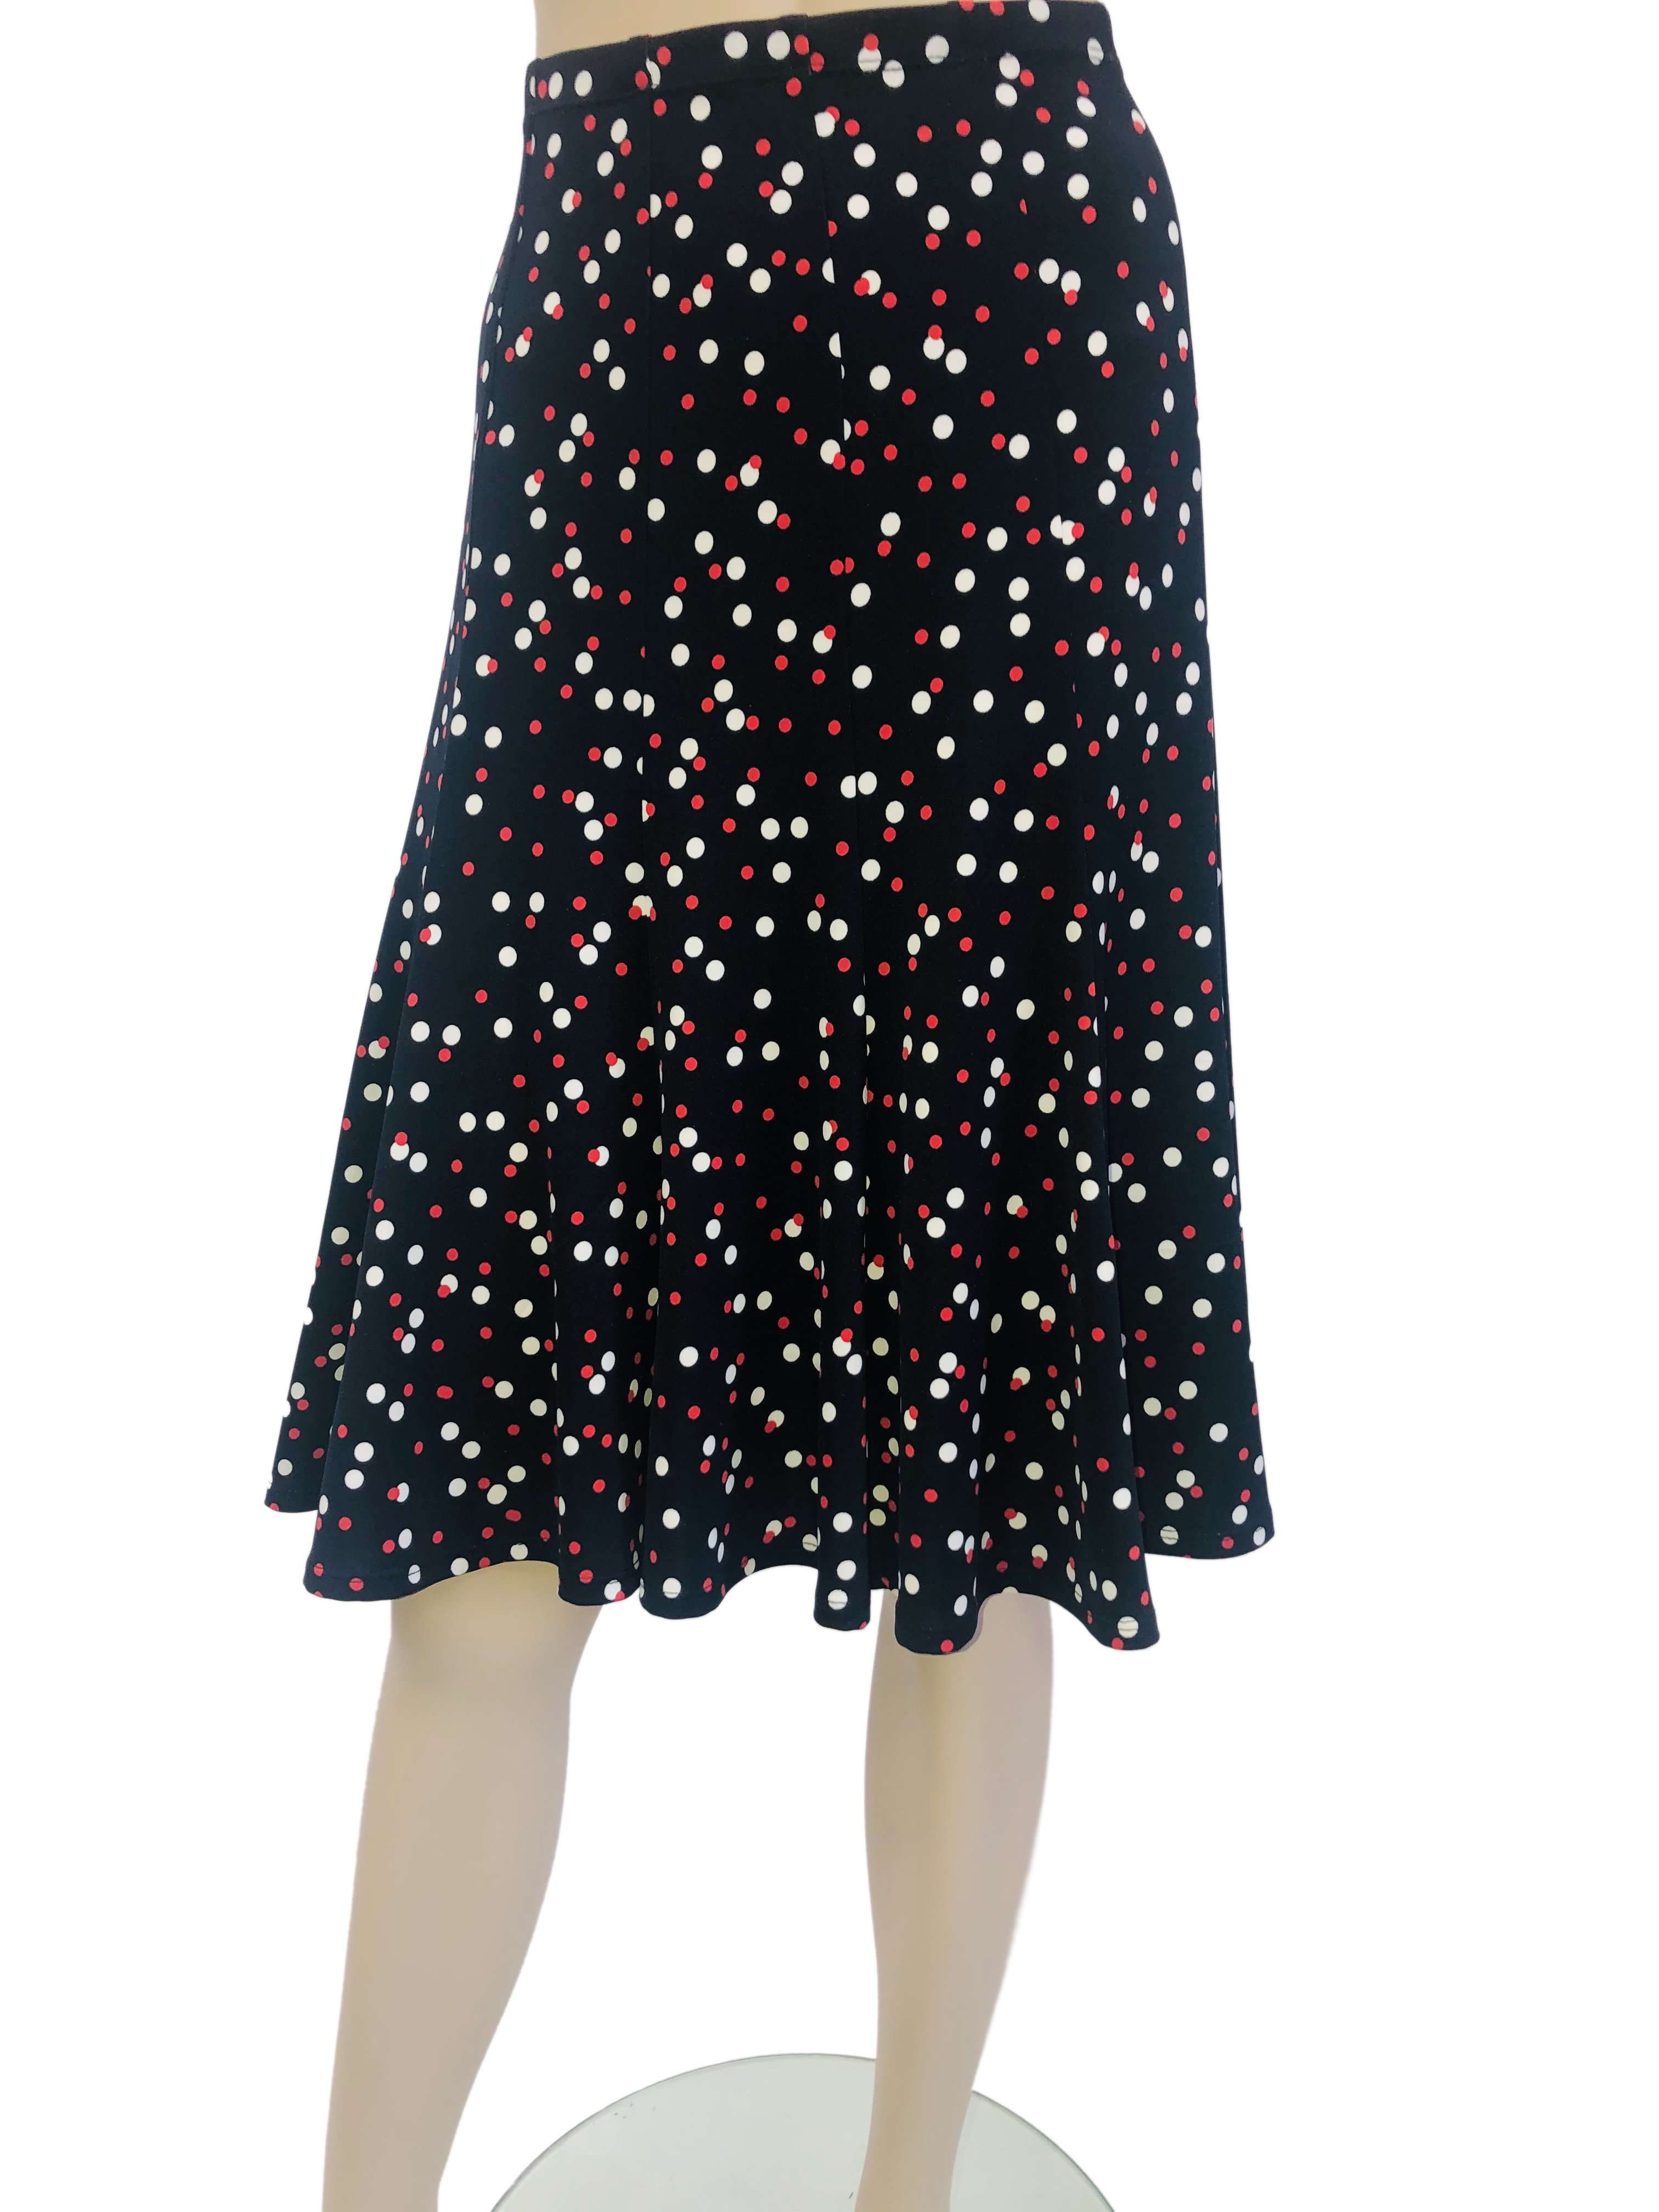 Women's Skirt Polka Dot Print - Made in Canada - Yvonne Marie - Yvonne Marie